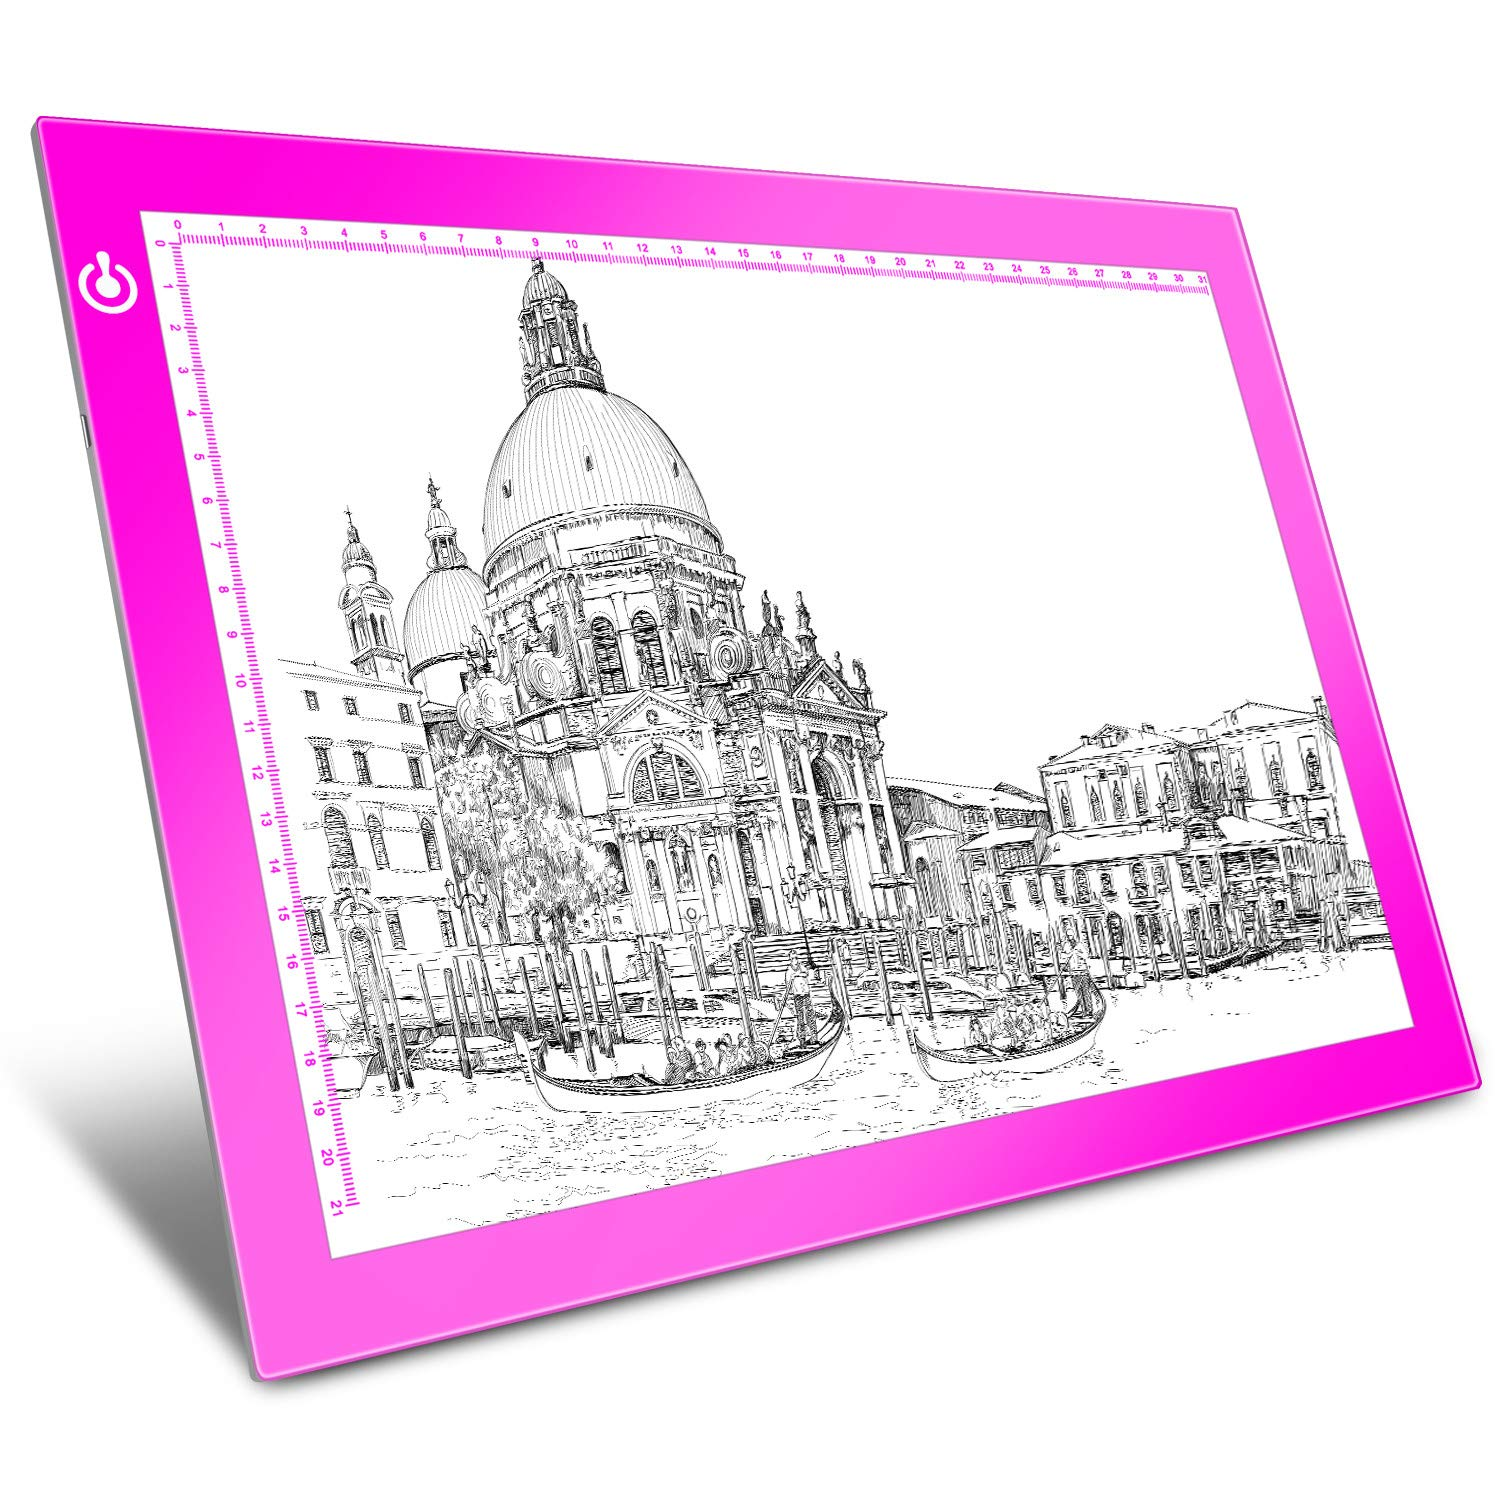 Pink A4 Dimmable LED Artcraft Light Box Tracer Slim Light Pad Portable Tablet, USB Power Cable Copy Drawing Board Tracing Table for Artists Designing, Animation, Sketching, Stenciling X-ray Viewing by LooEooDoo